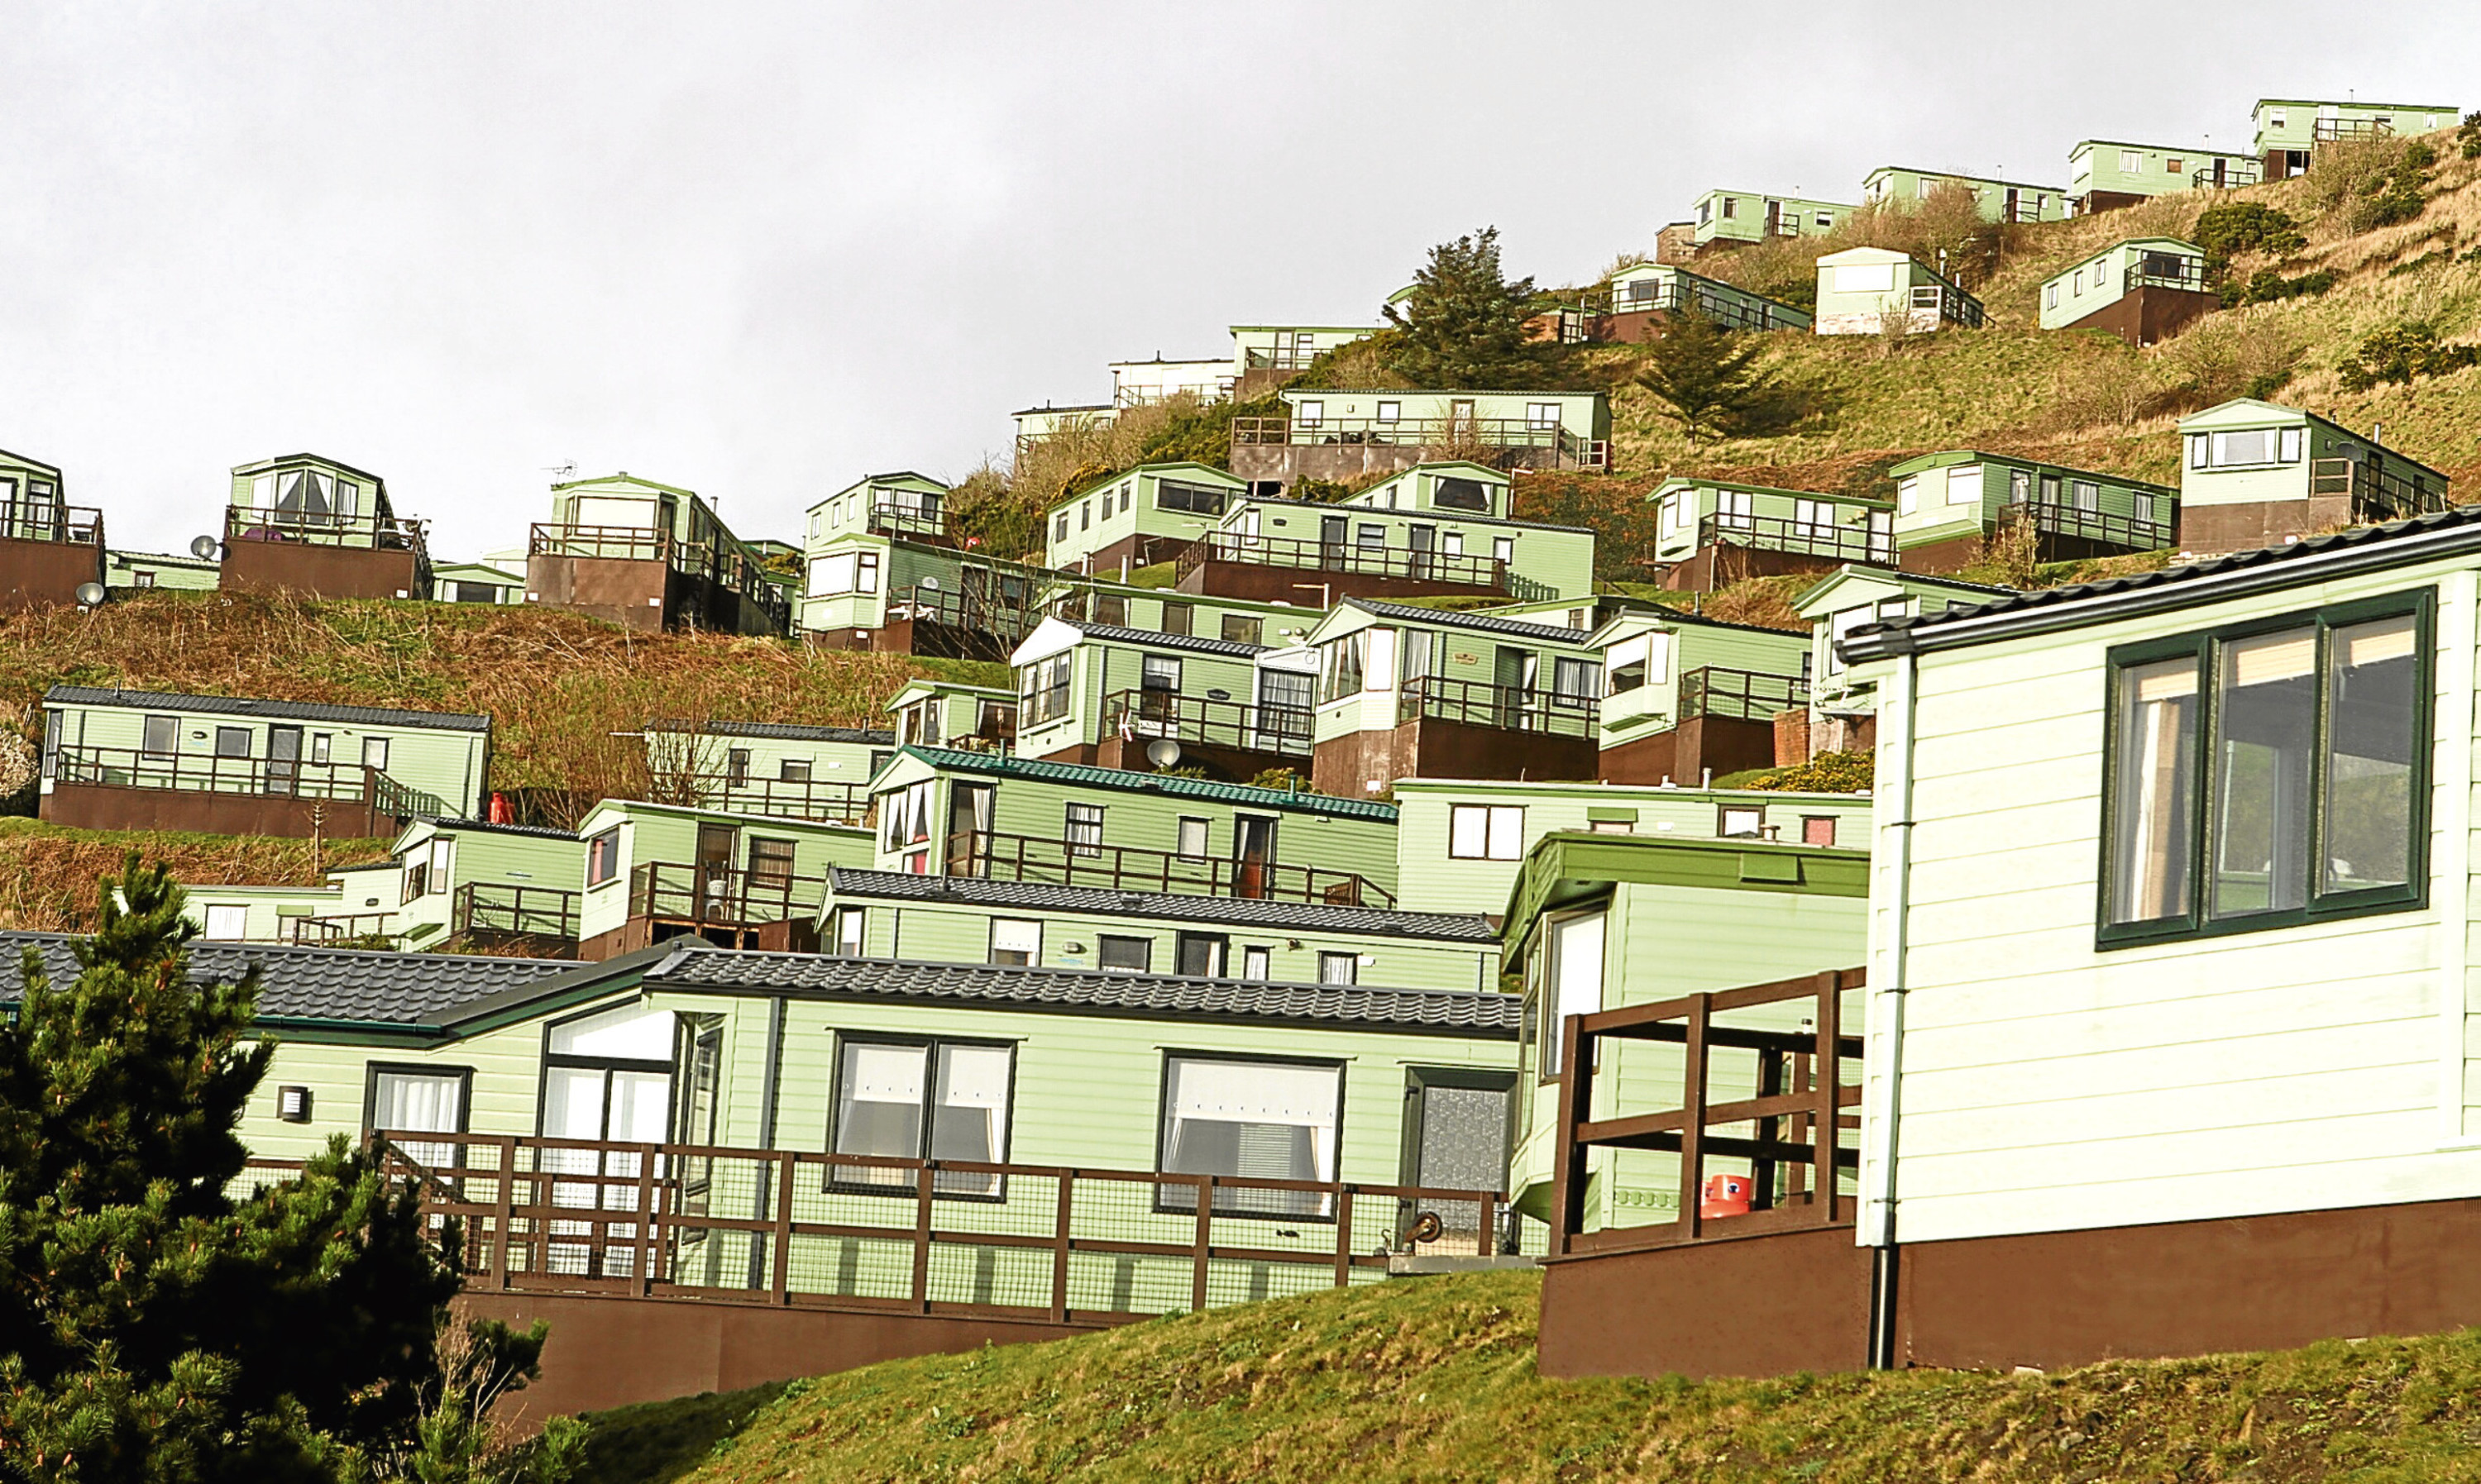 A view of Pettycur Bay Holiday Park